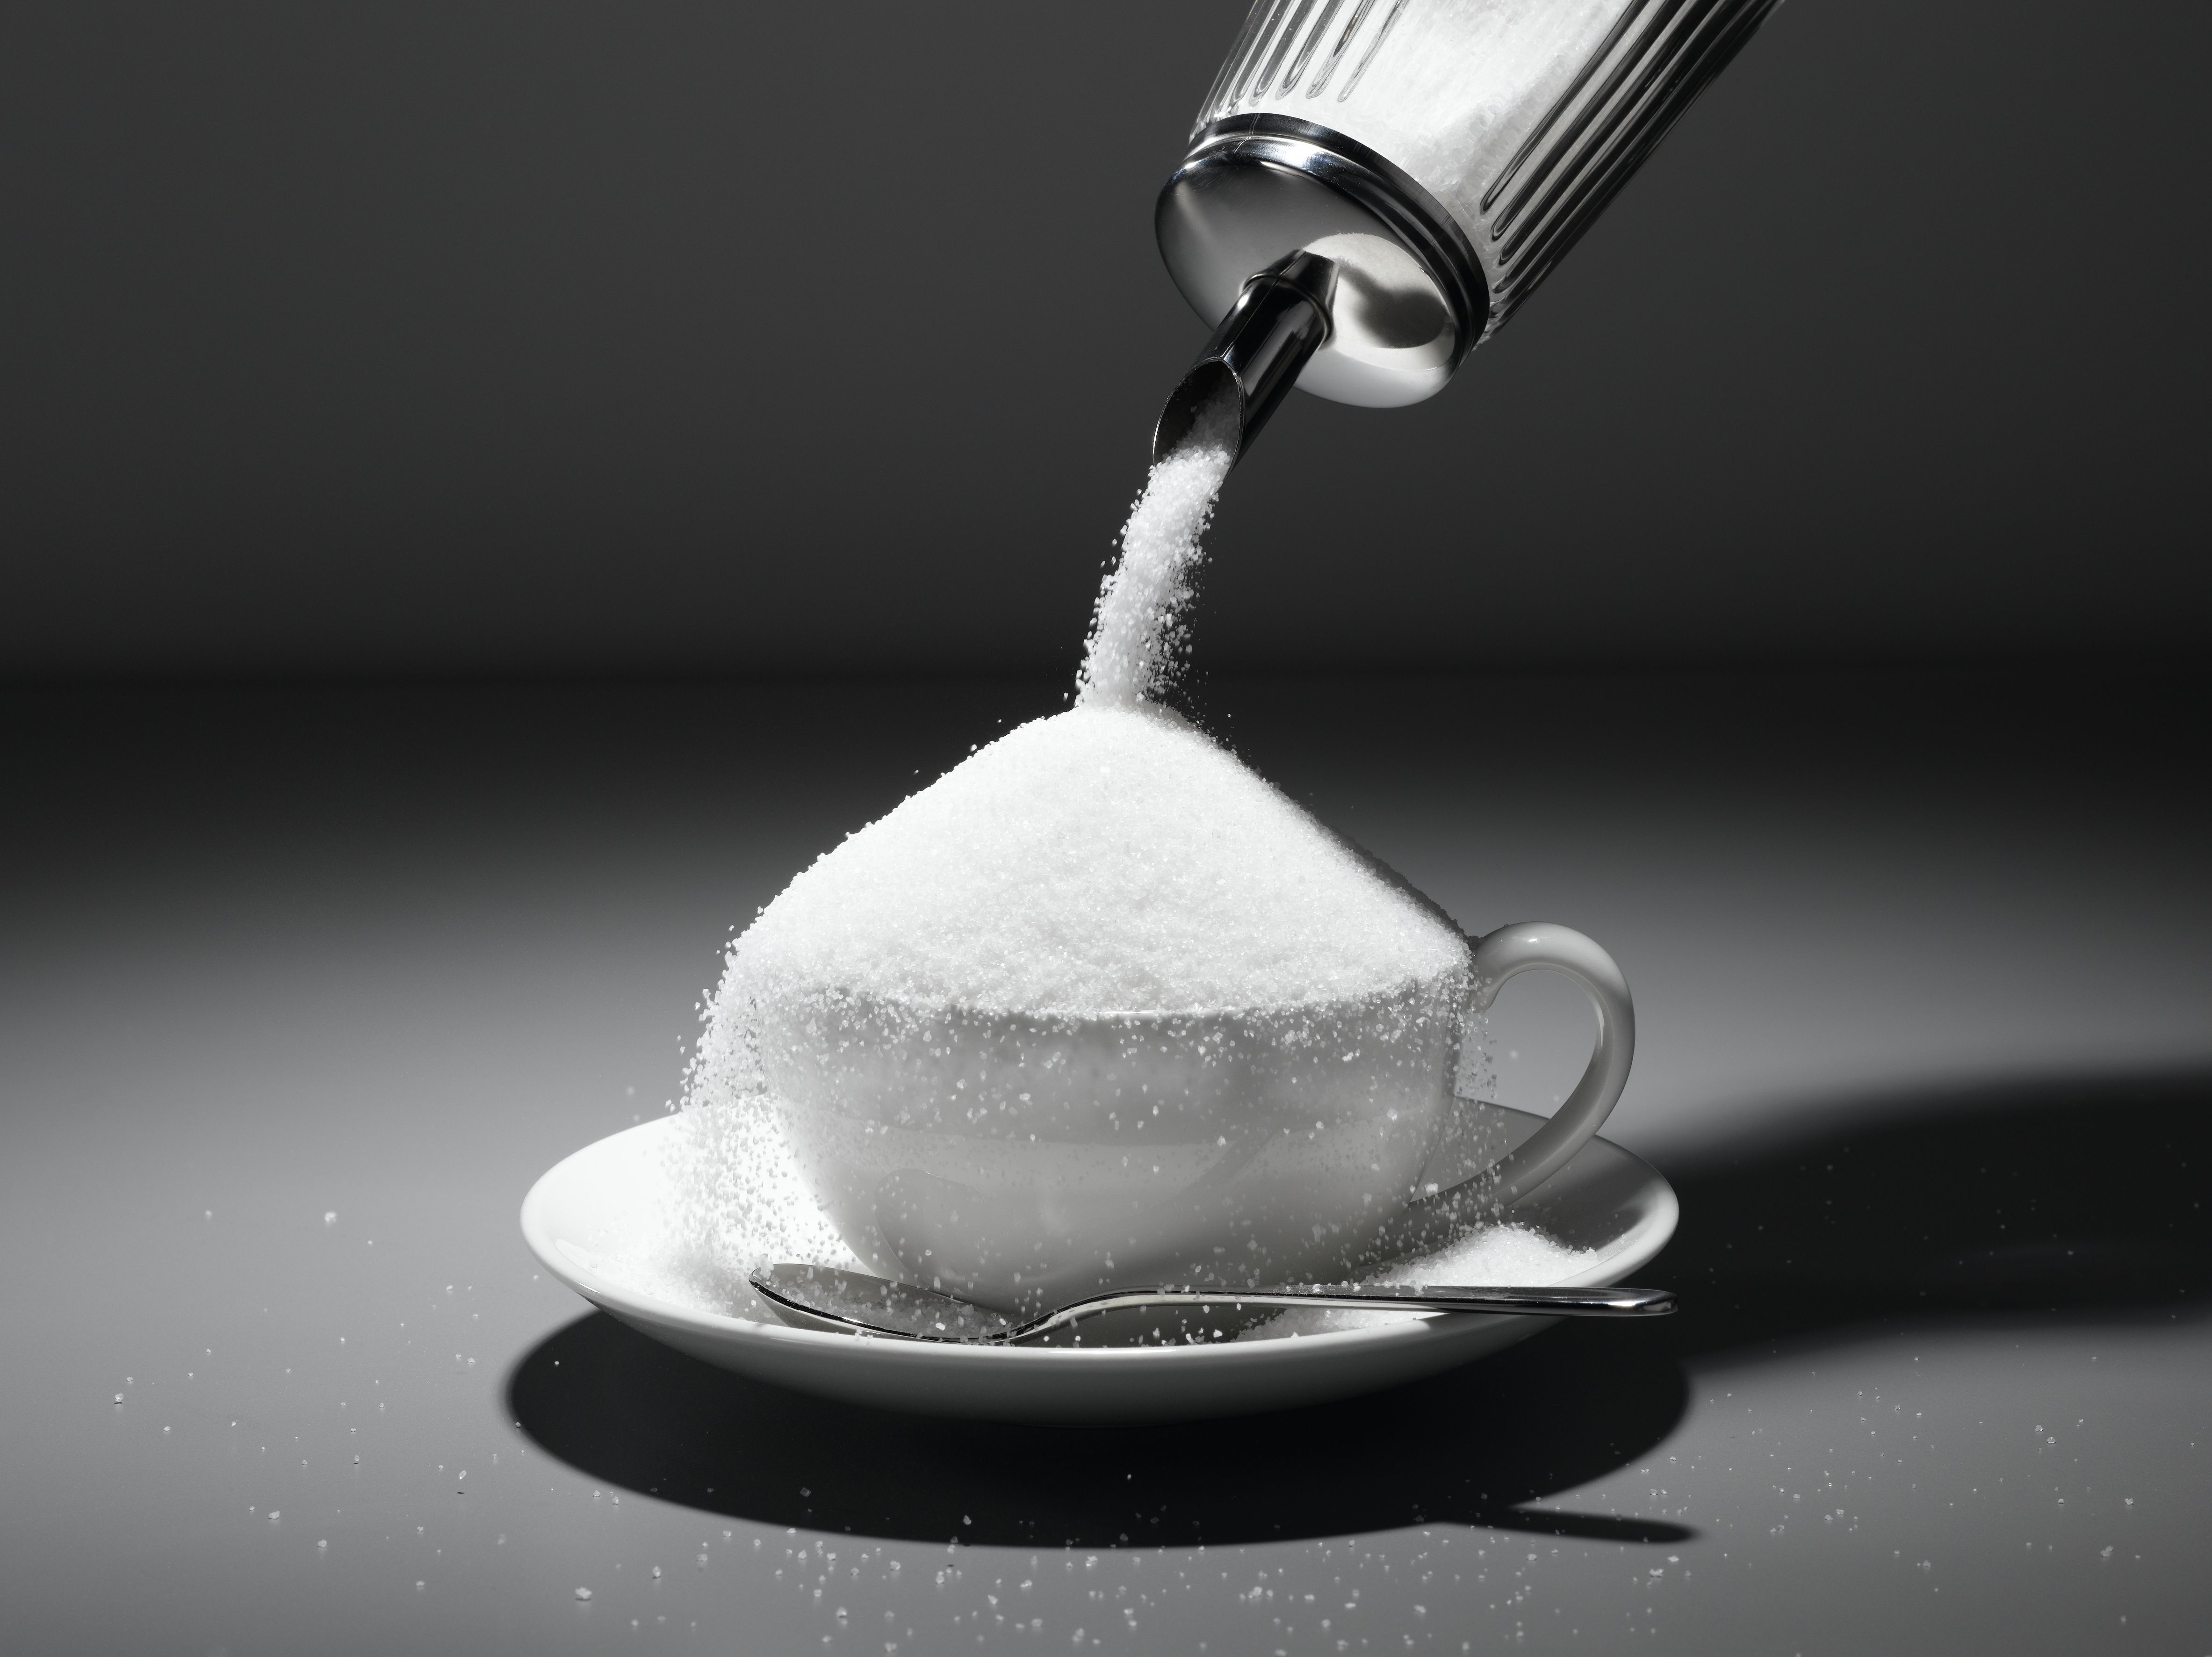 White sugar pouring into cup